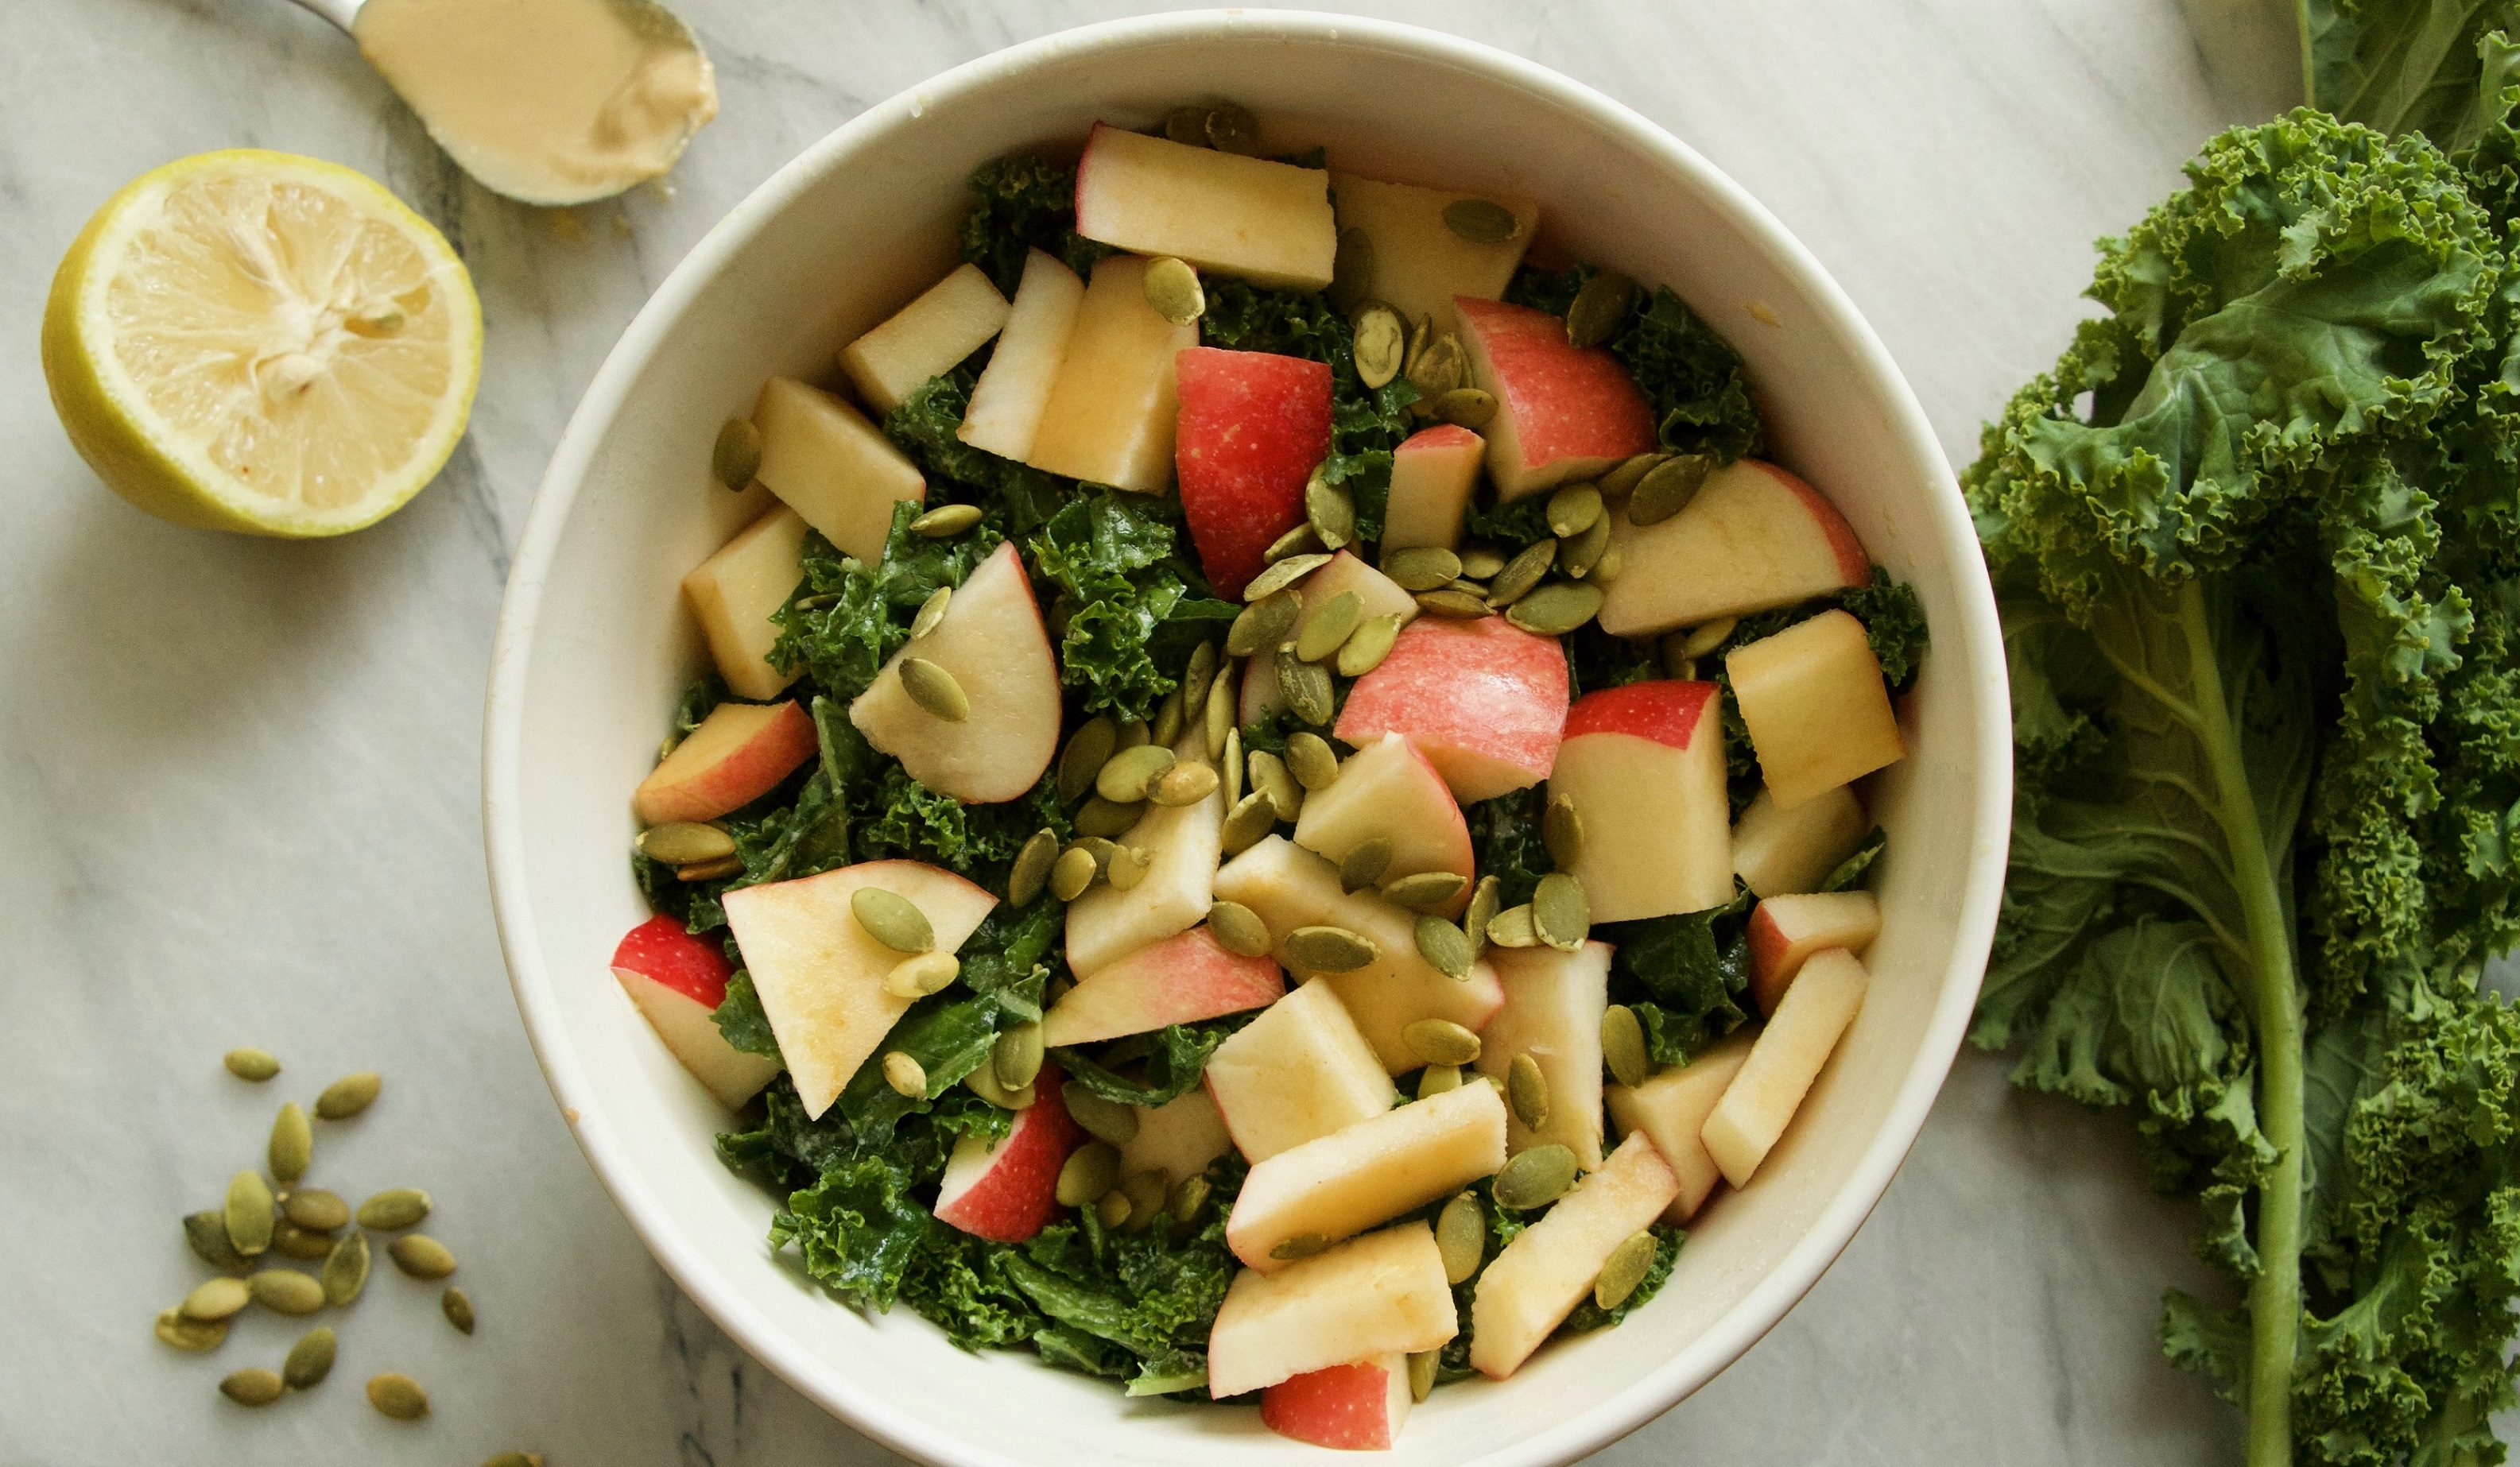 Tahini-Lemon Kale Salad with Apples